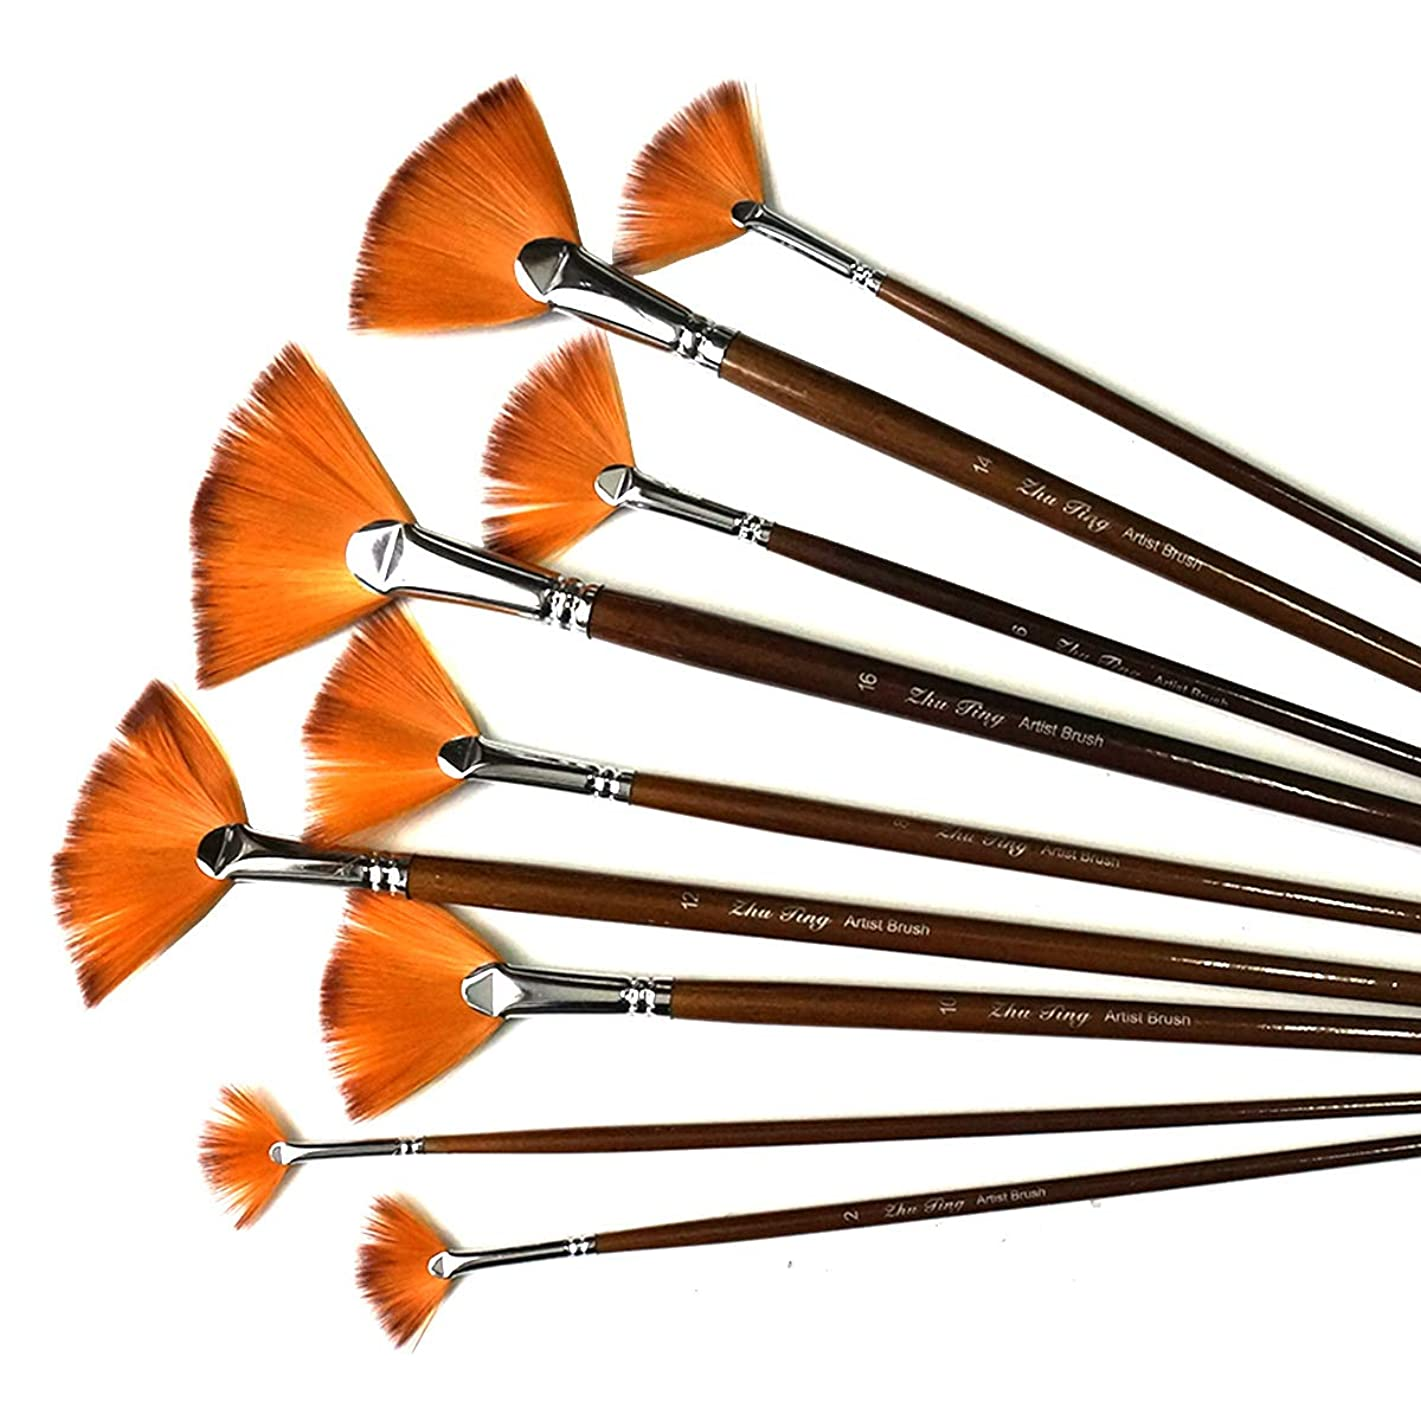 Misscrafts 9pcs Painting Brush Set Fan Artist Brushes with Nylon Hair Wood Long Handle for Acrylic Watercolor Oil Painting